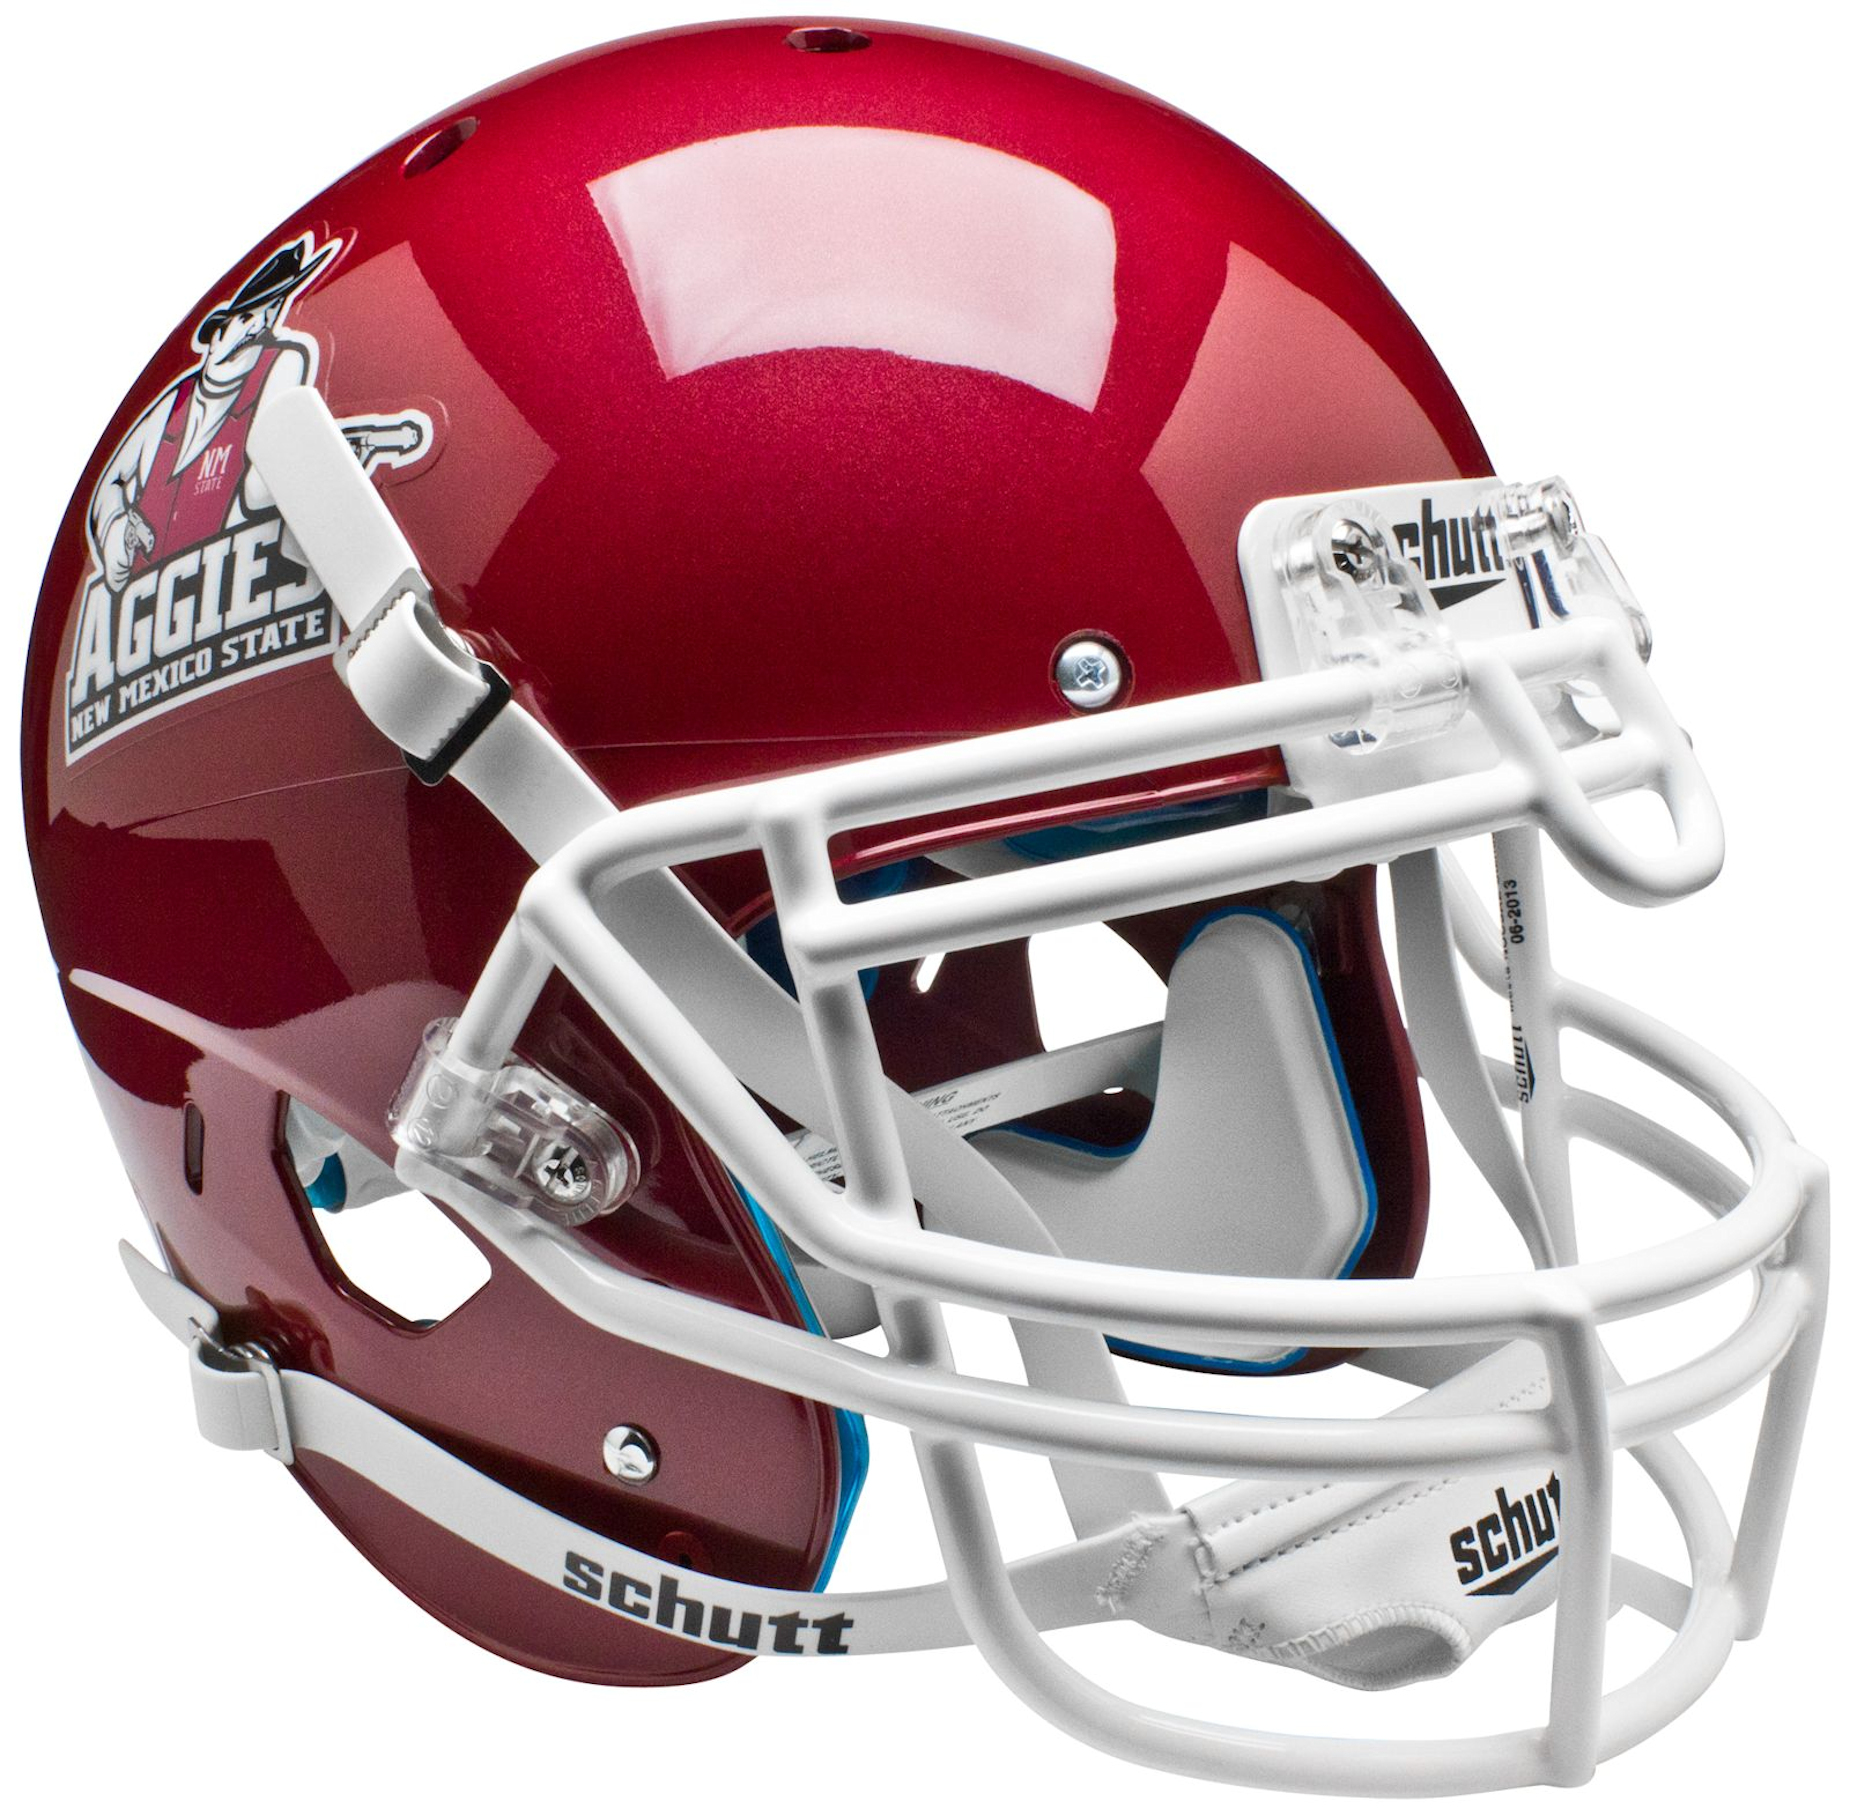 New Mexico State Aggies Authentic College XP Football Helmet Schutt